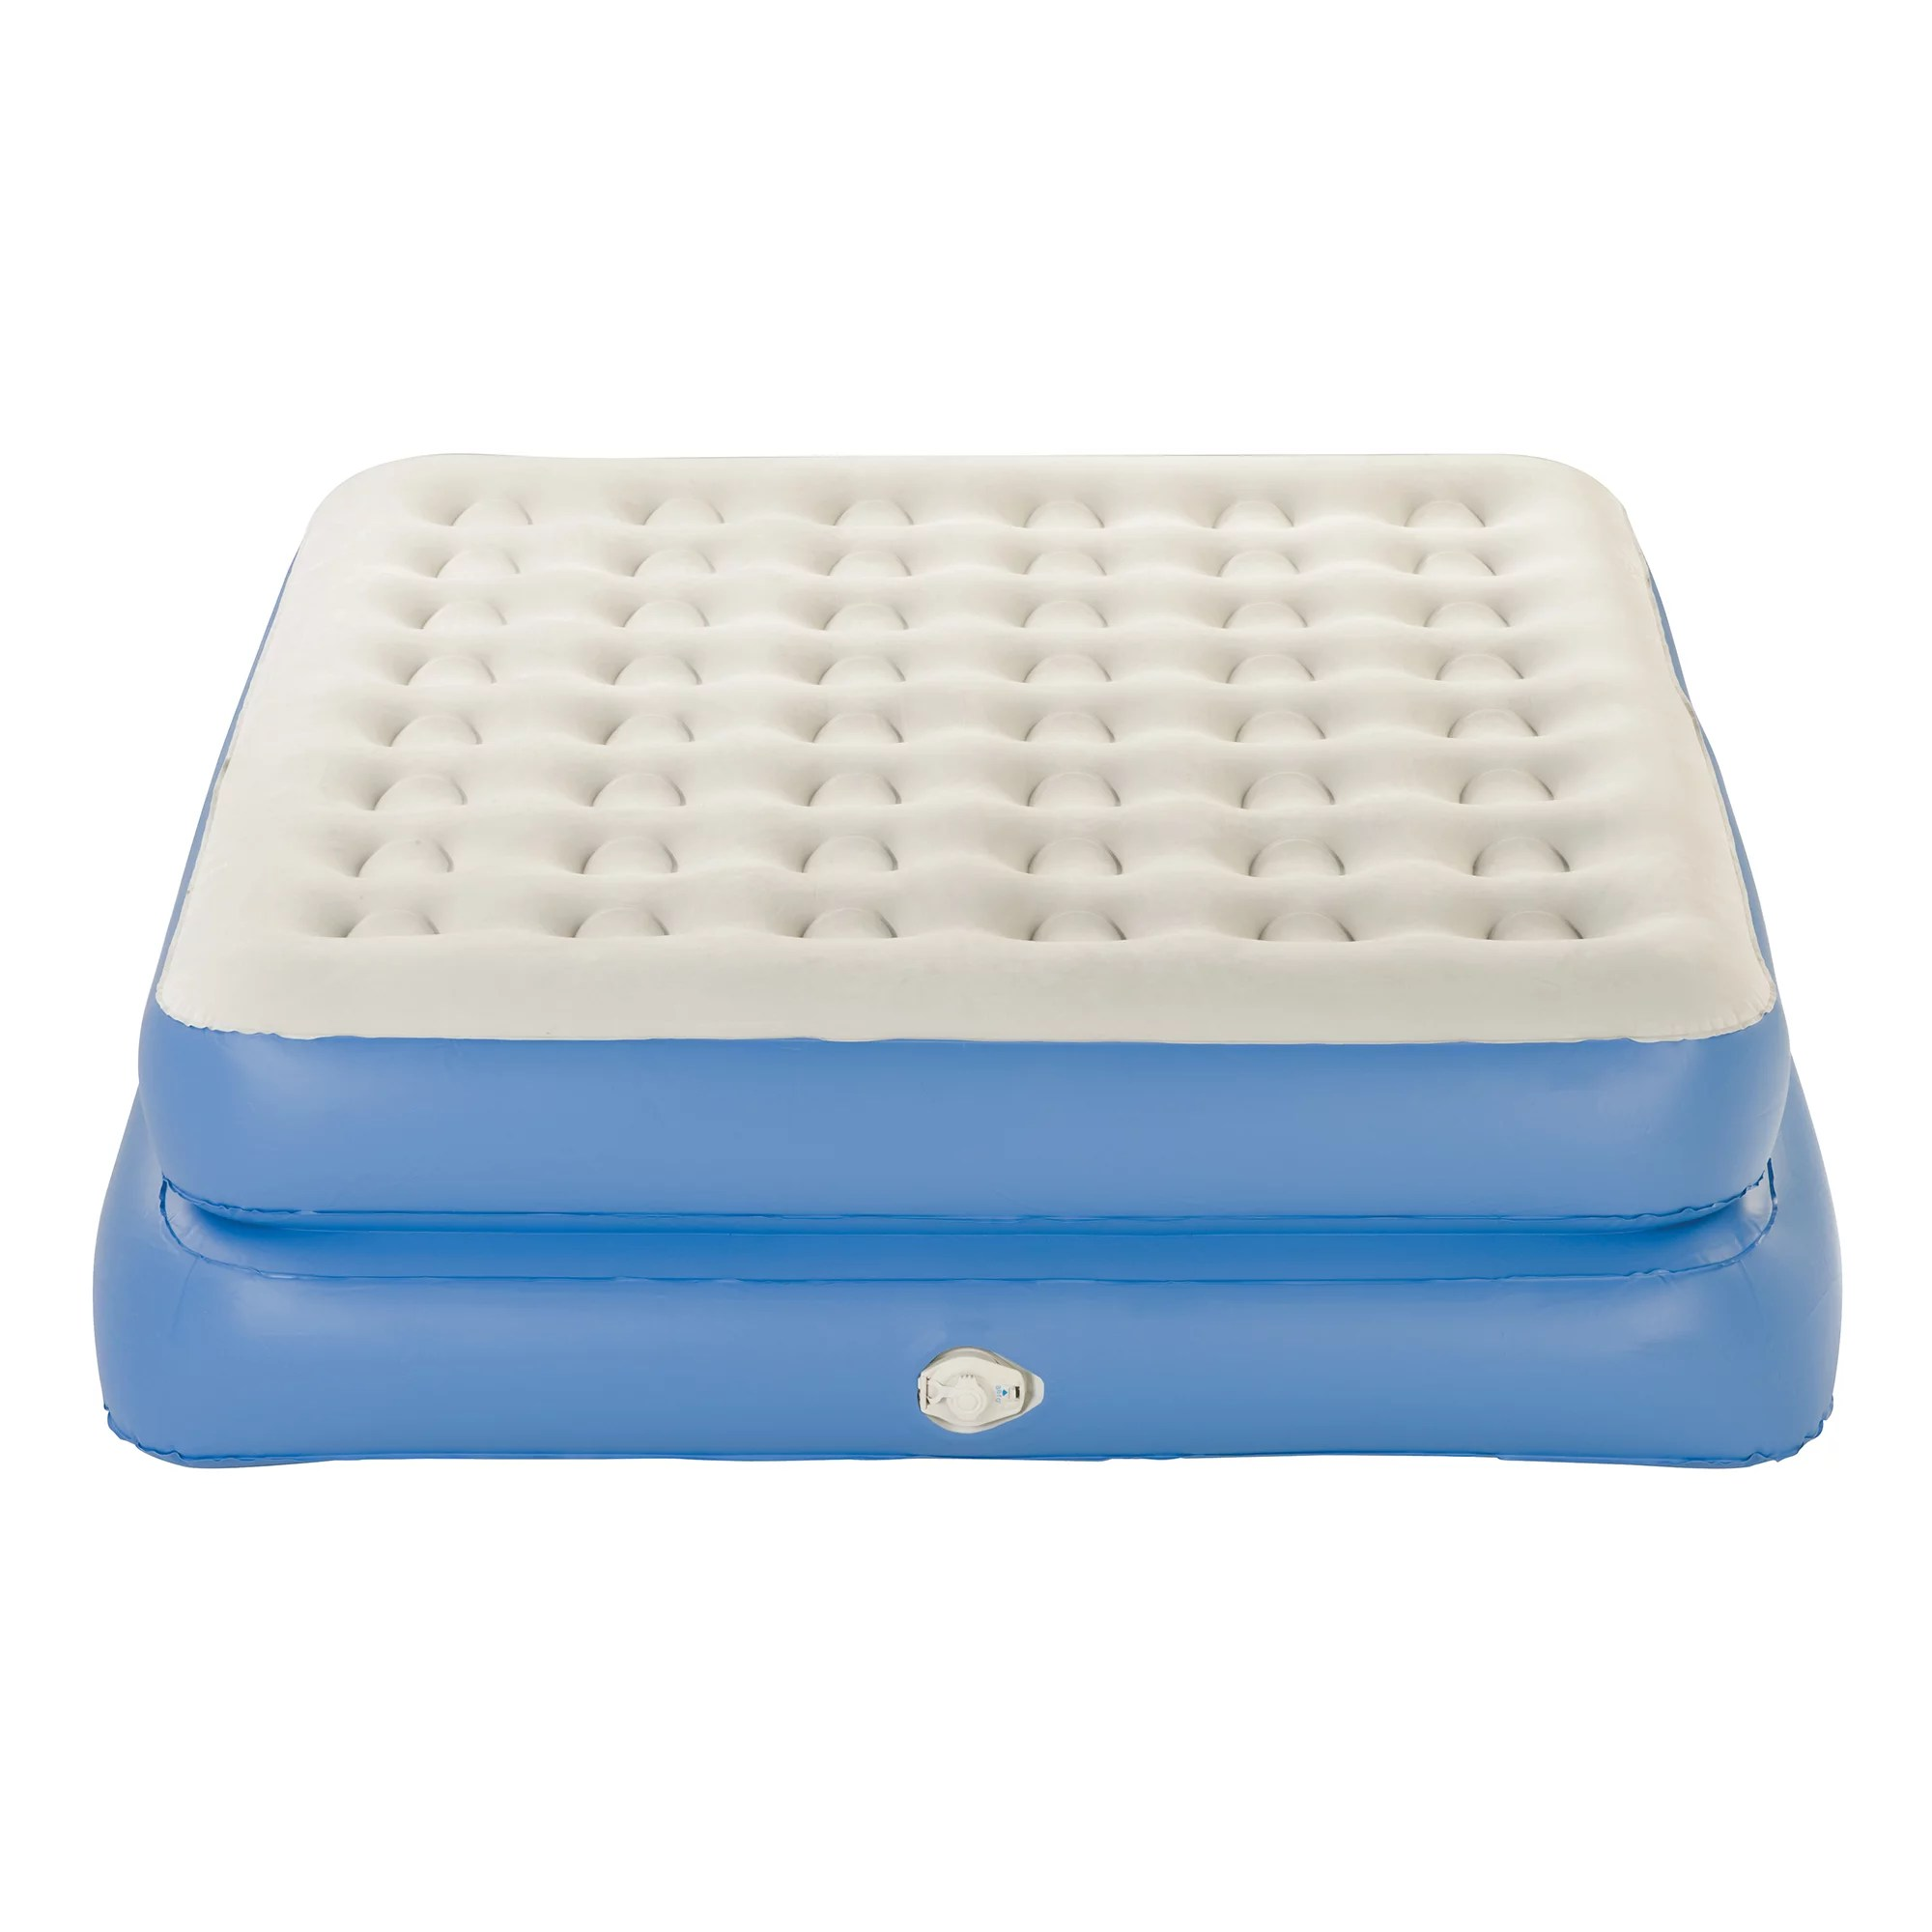 Camping Aero Bed Aerobed Classic Air Mattress Queen